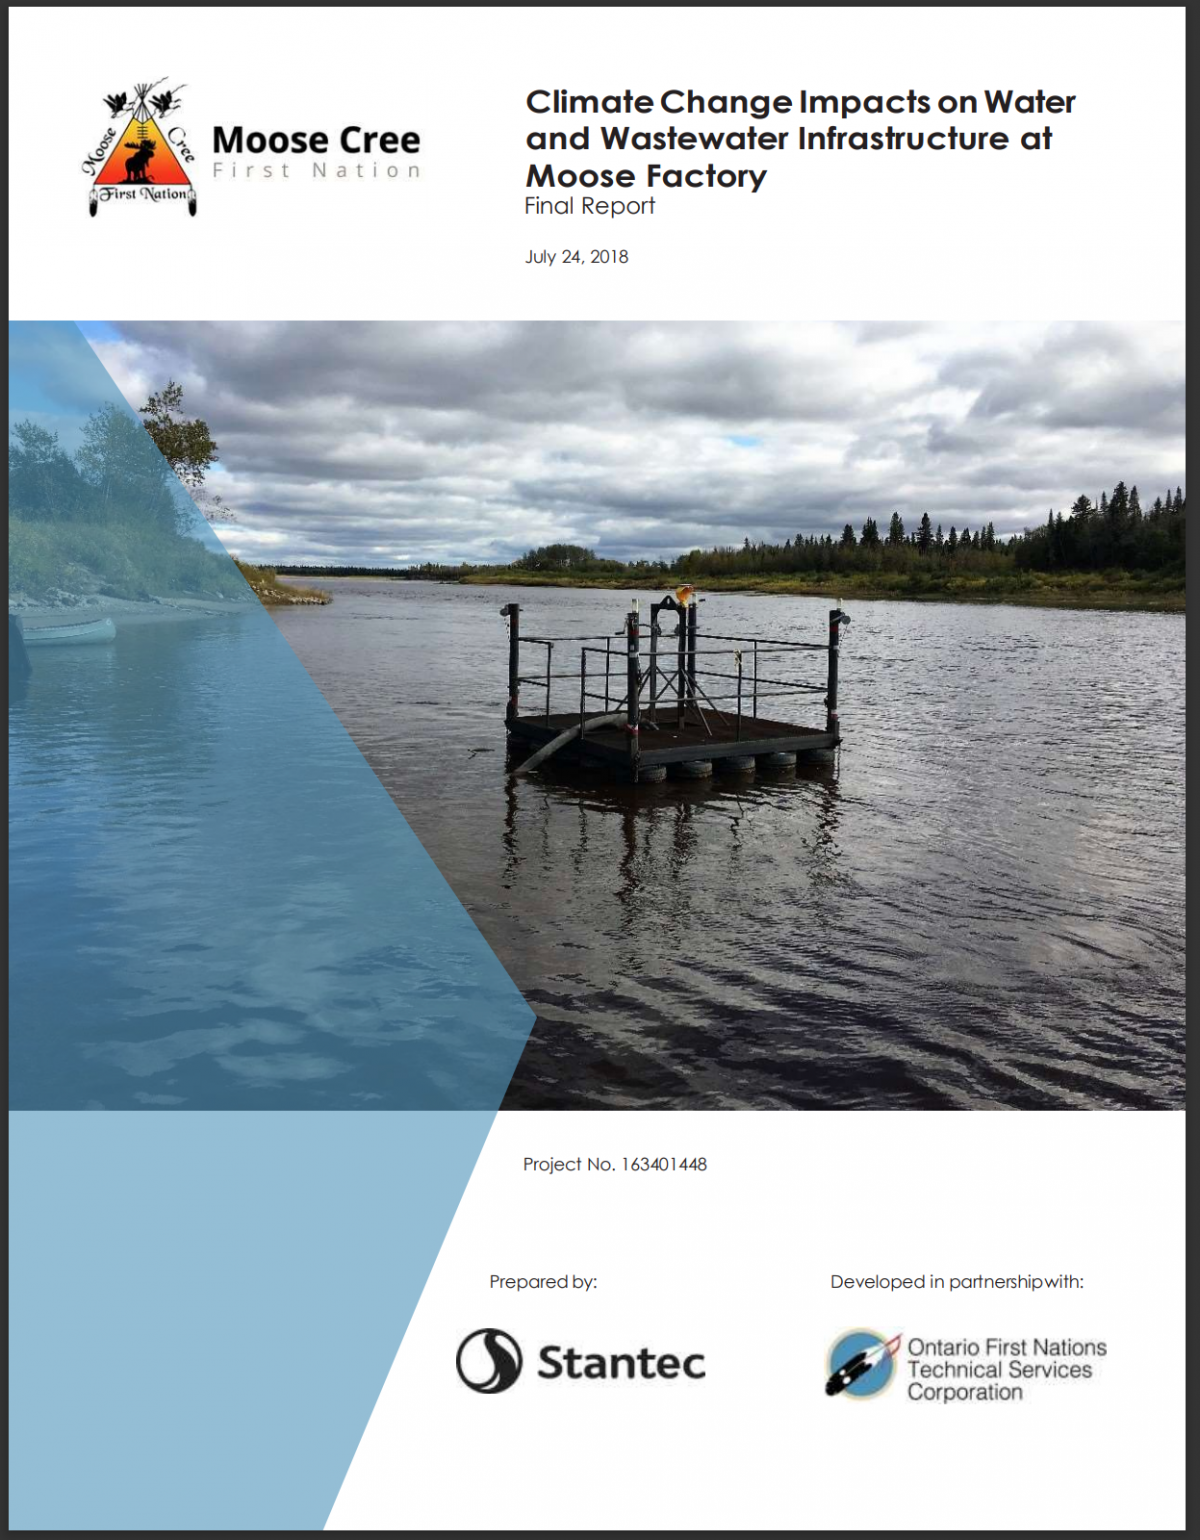 CLIMATE CHANGE IMPACTS ON WATER AND WASTEWATER INFRASTRUCTURE AT MOOSE FACTORY